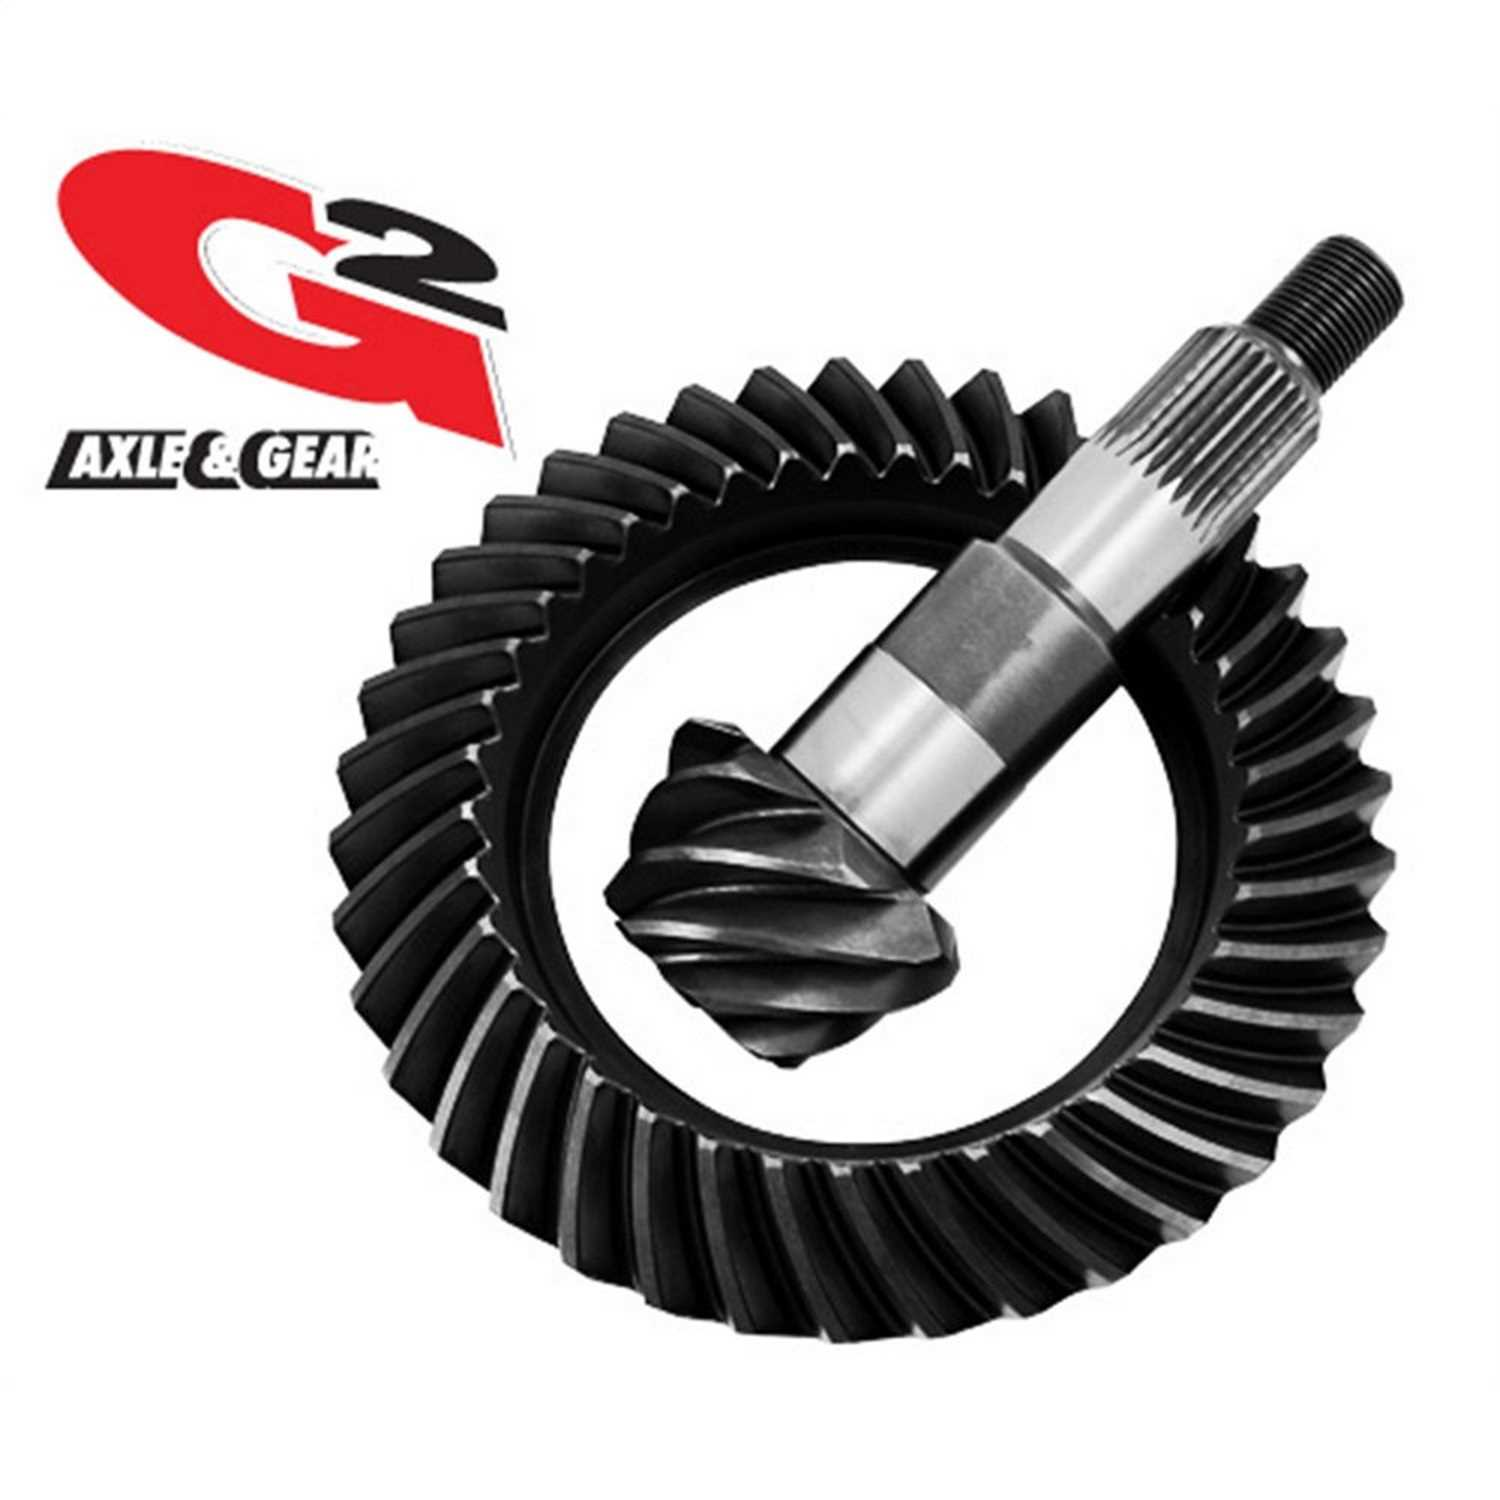 2-2032-456 G2 Axle and Gear Ring and Pinion Set